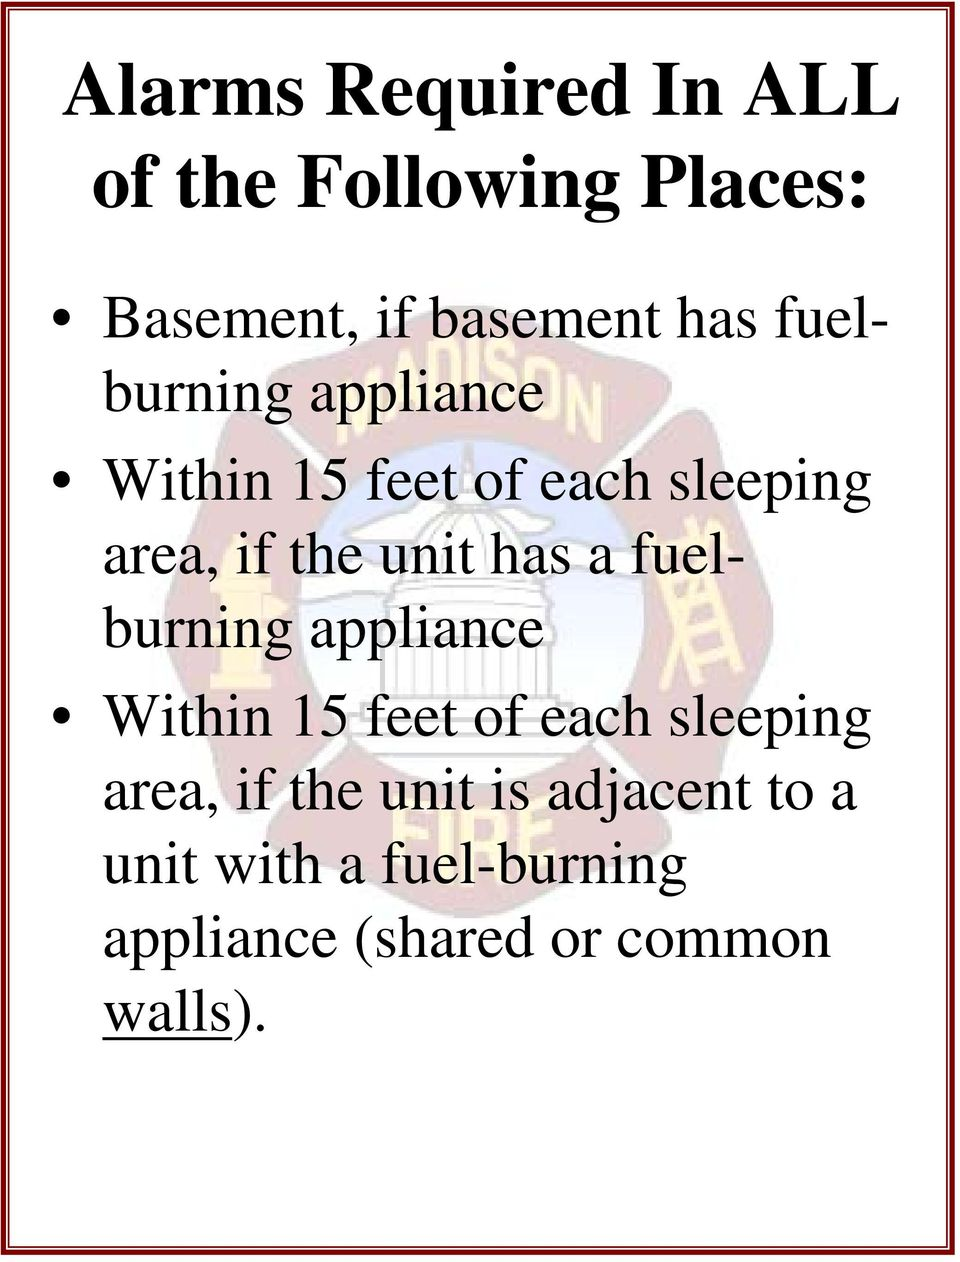 a fuel- burning appliance Within 15 feet of each sleeping area, if the unit